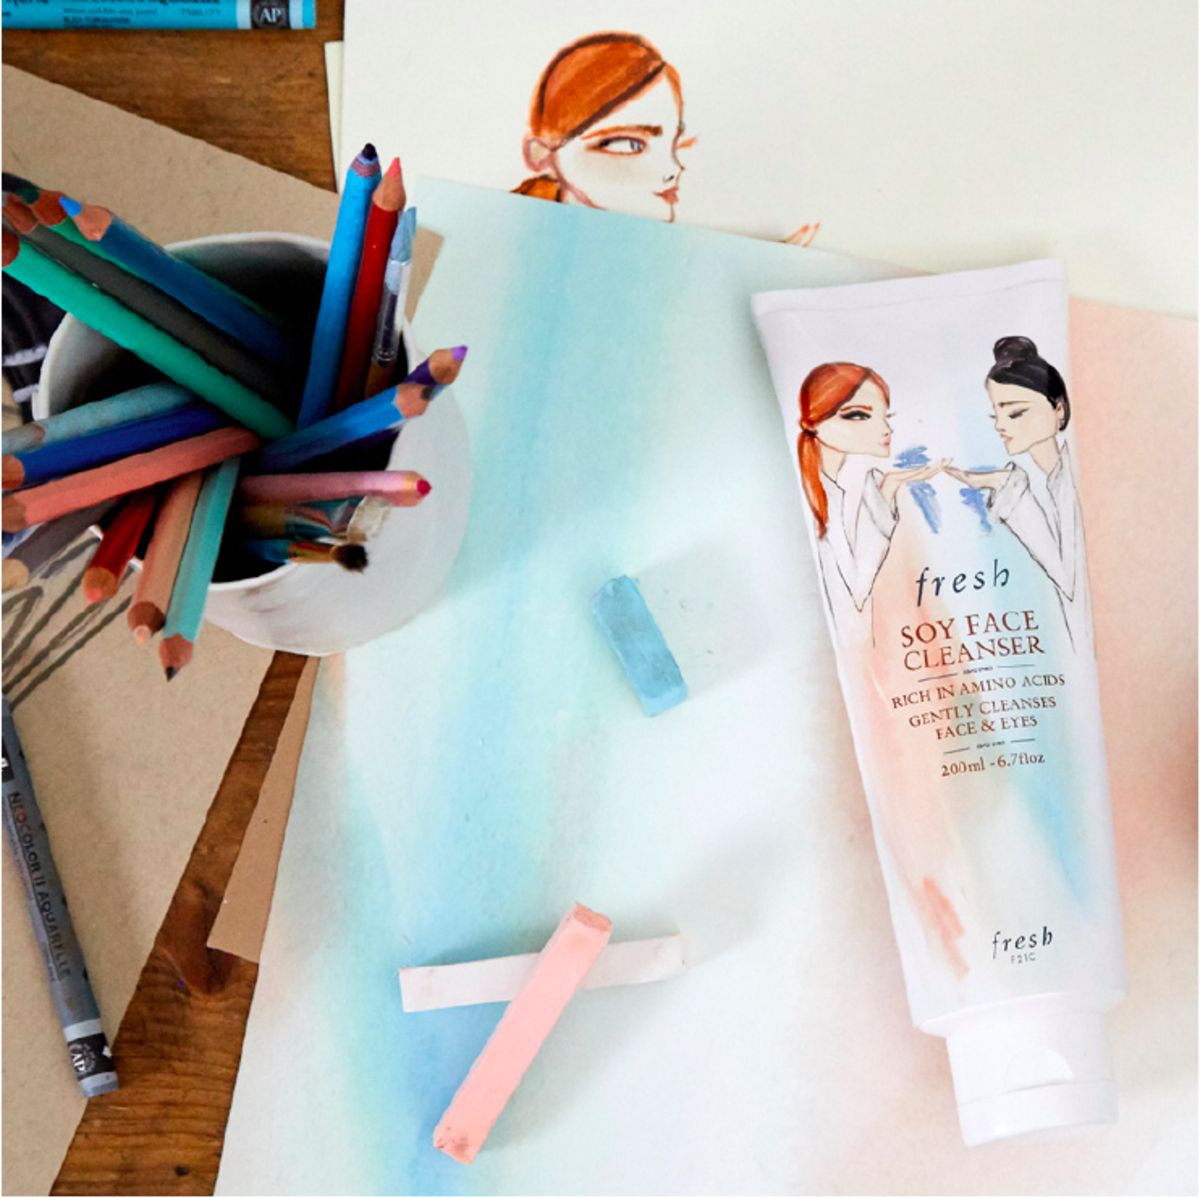 Fresh Soy Face Cleanser illustration in watercolour paint and marker